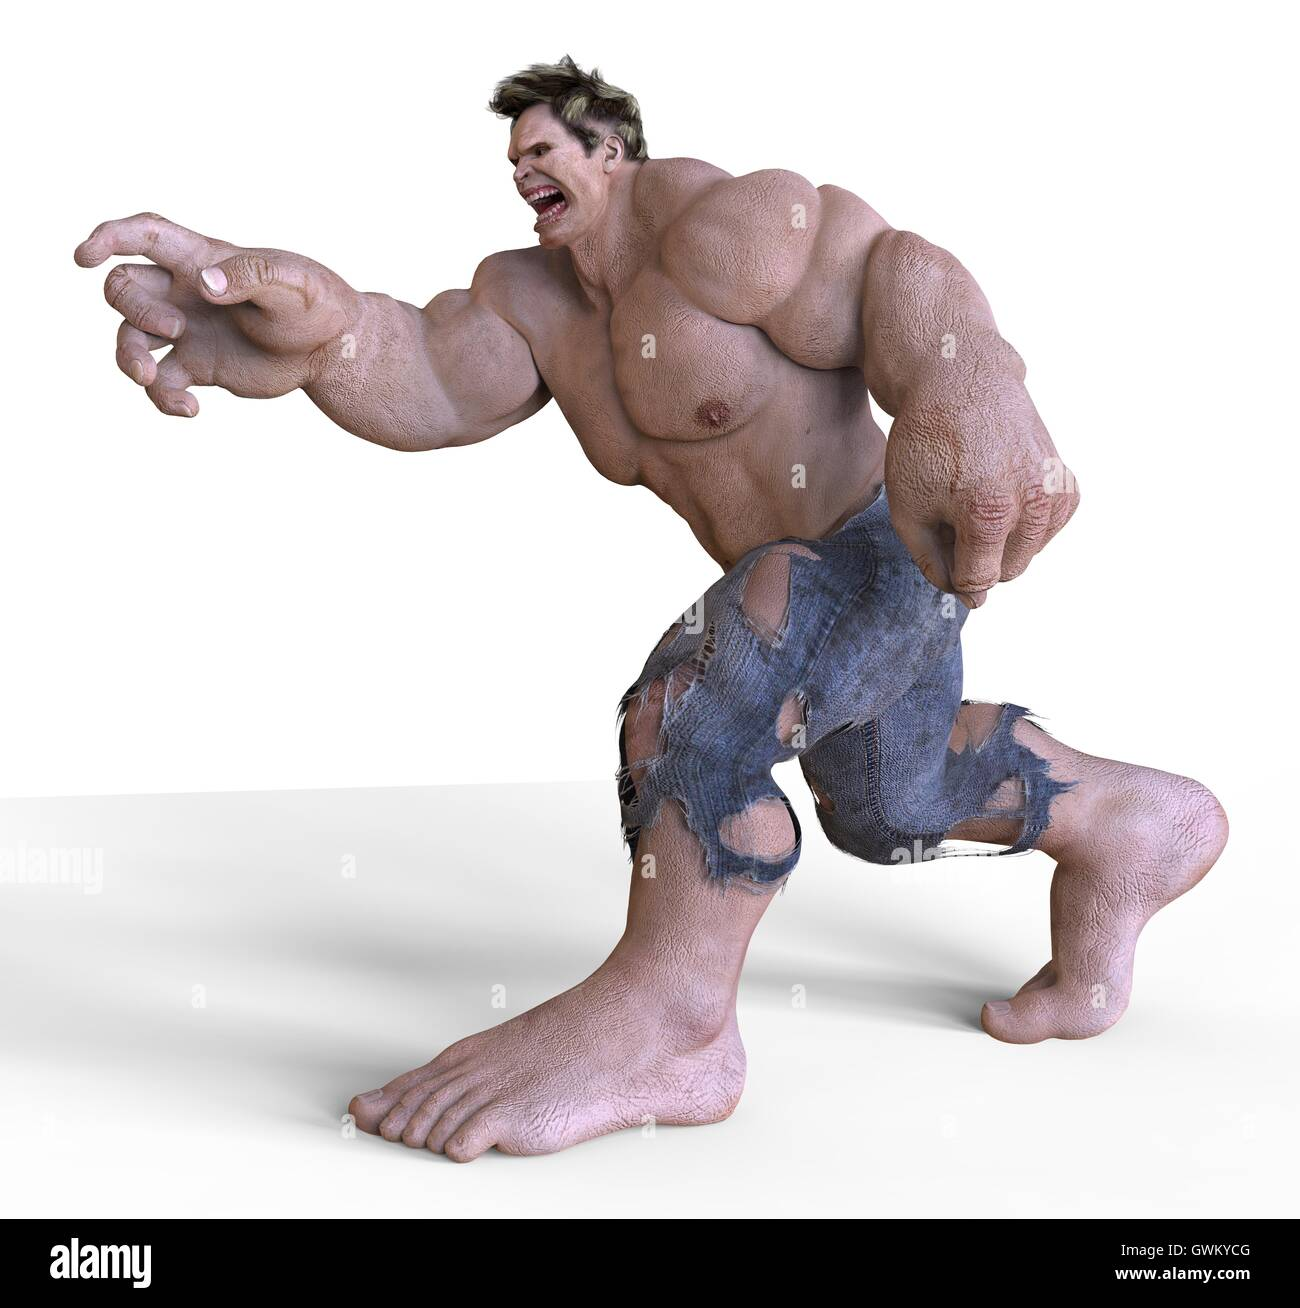 Giant monster 3d illustration stock photo royalty free for Createur 3d